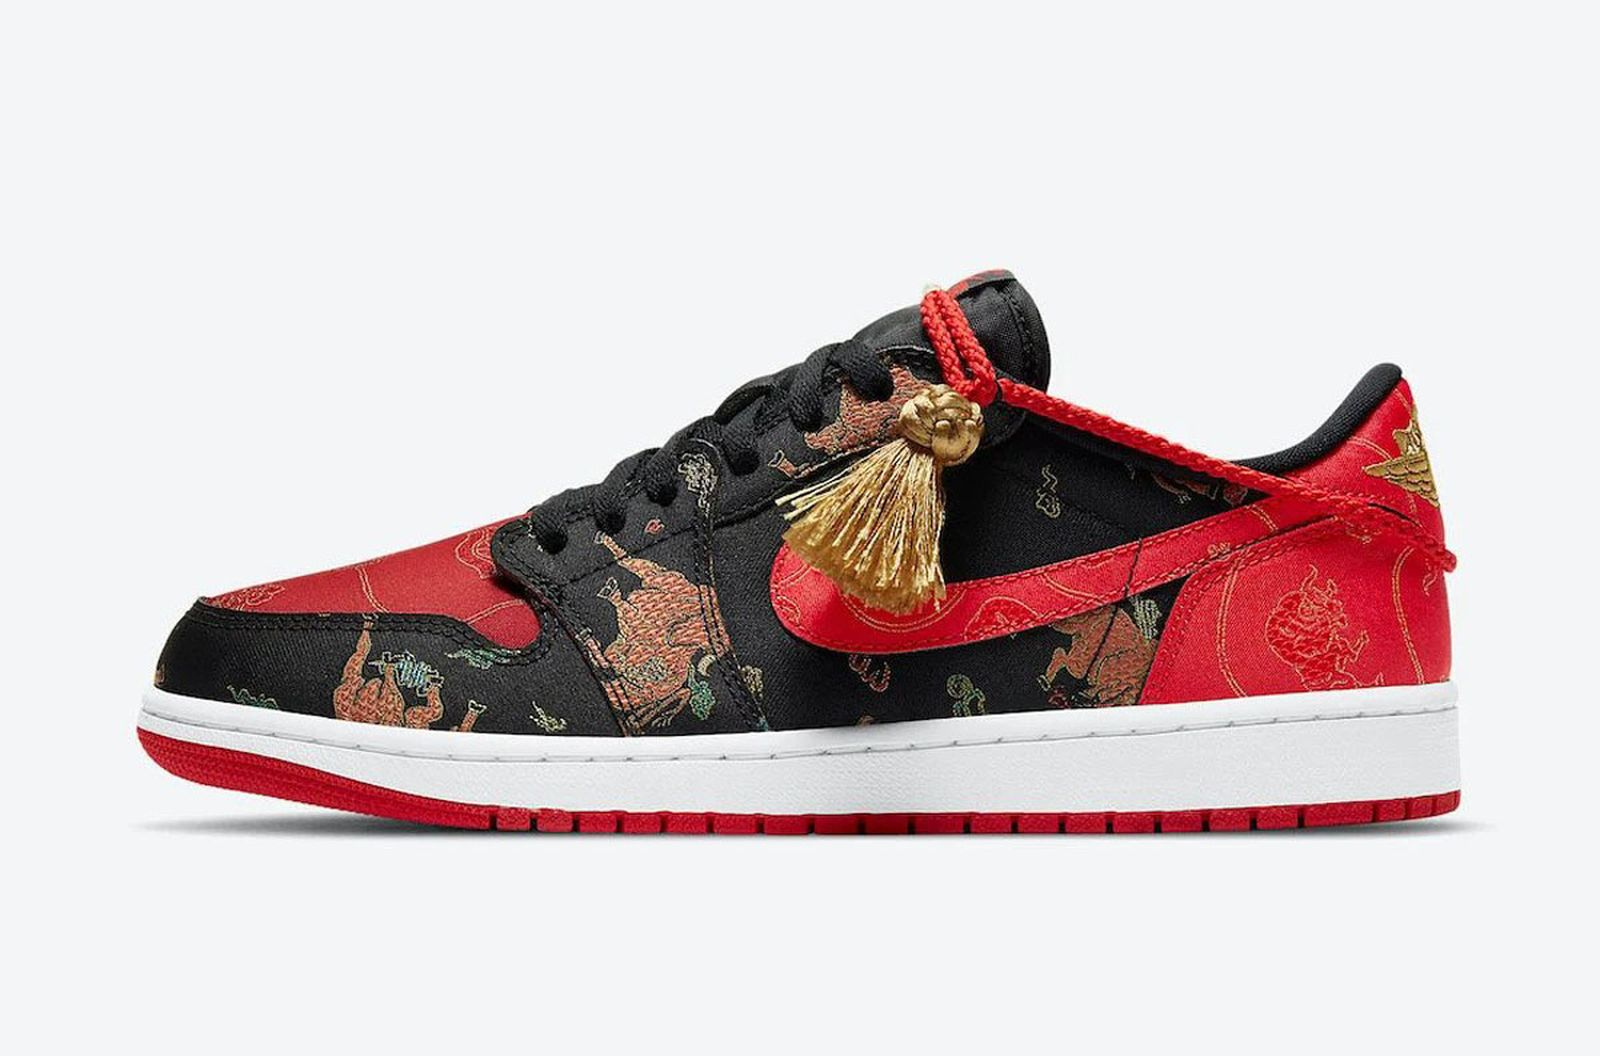 nike-air-jordan-1-low-cny-2021-release-date-price-04.jpg